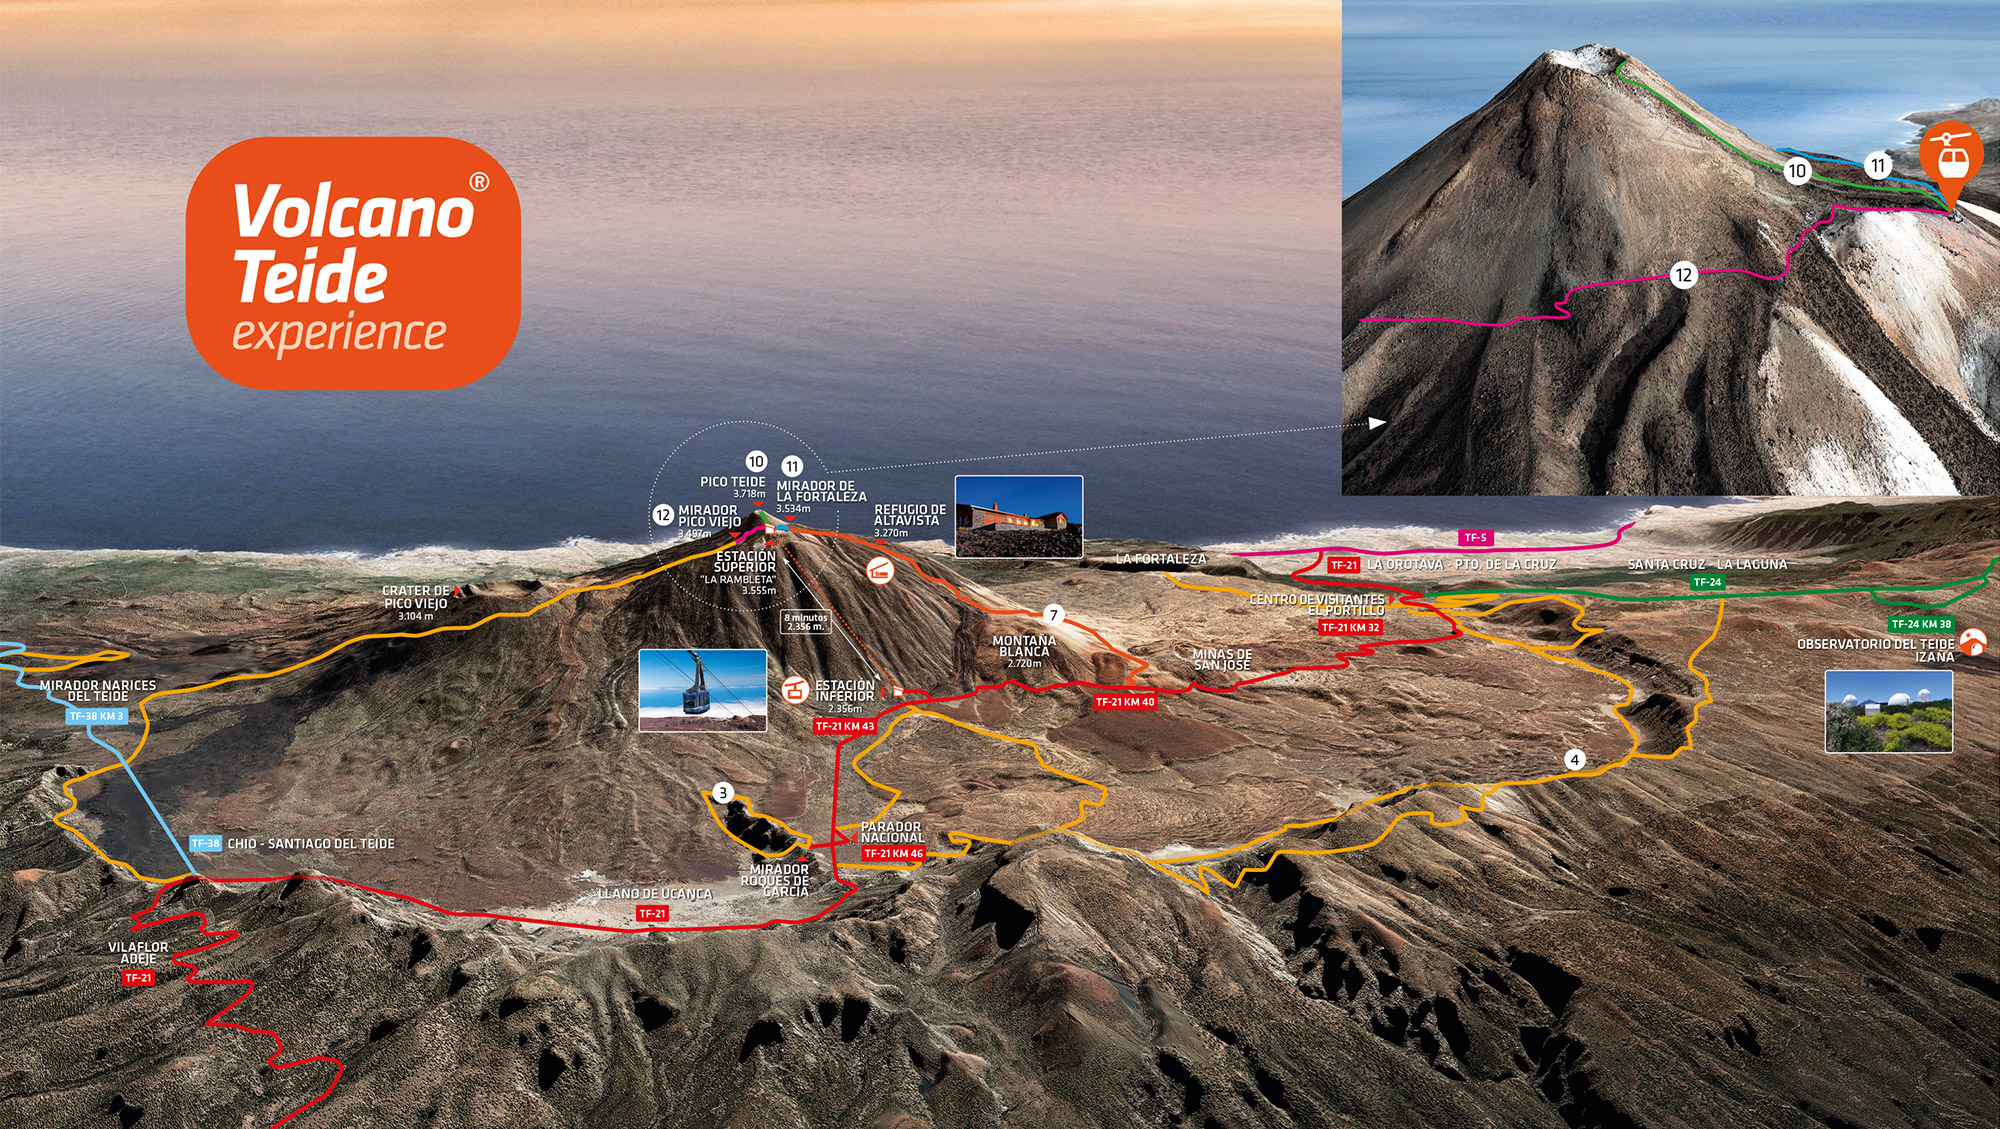 How to get the Mount Teide permit